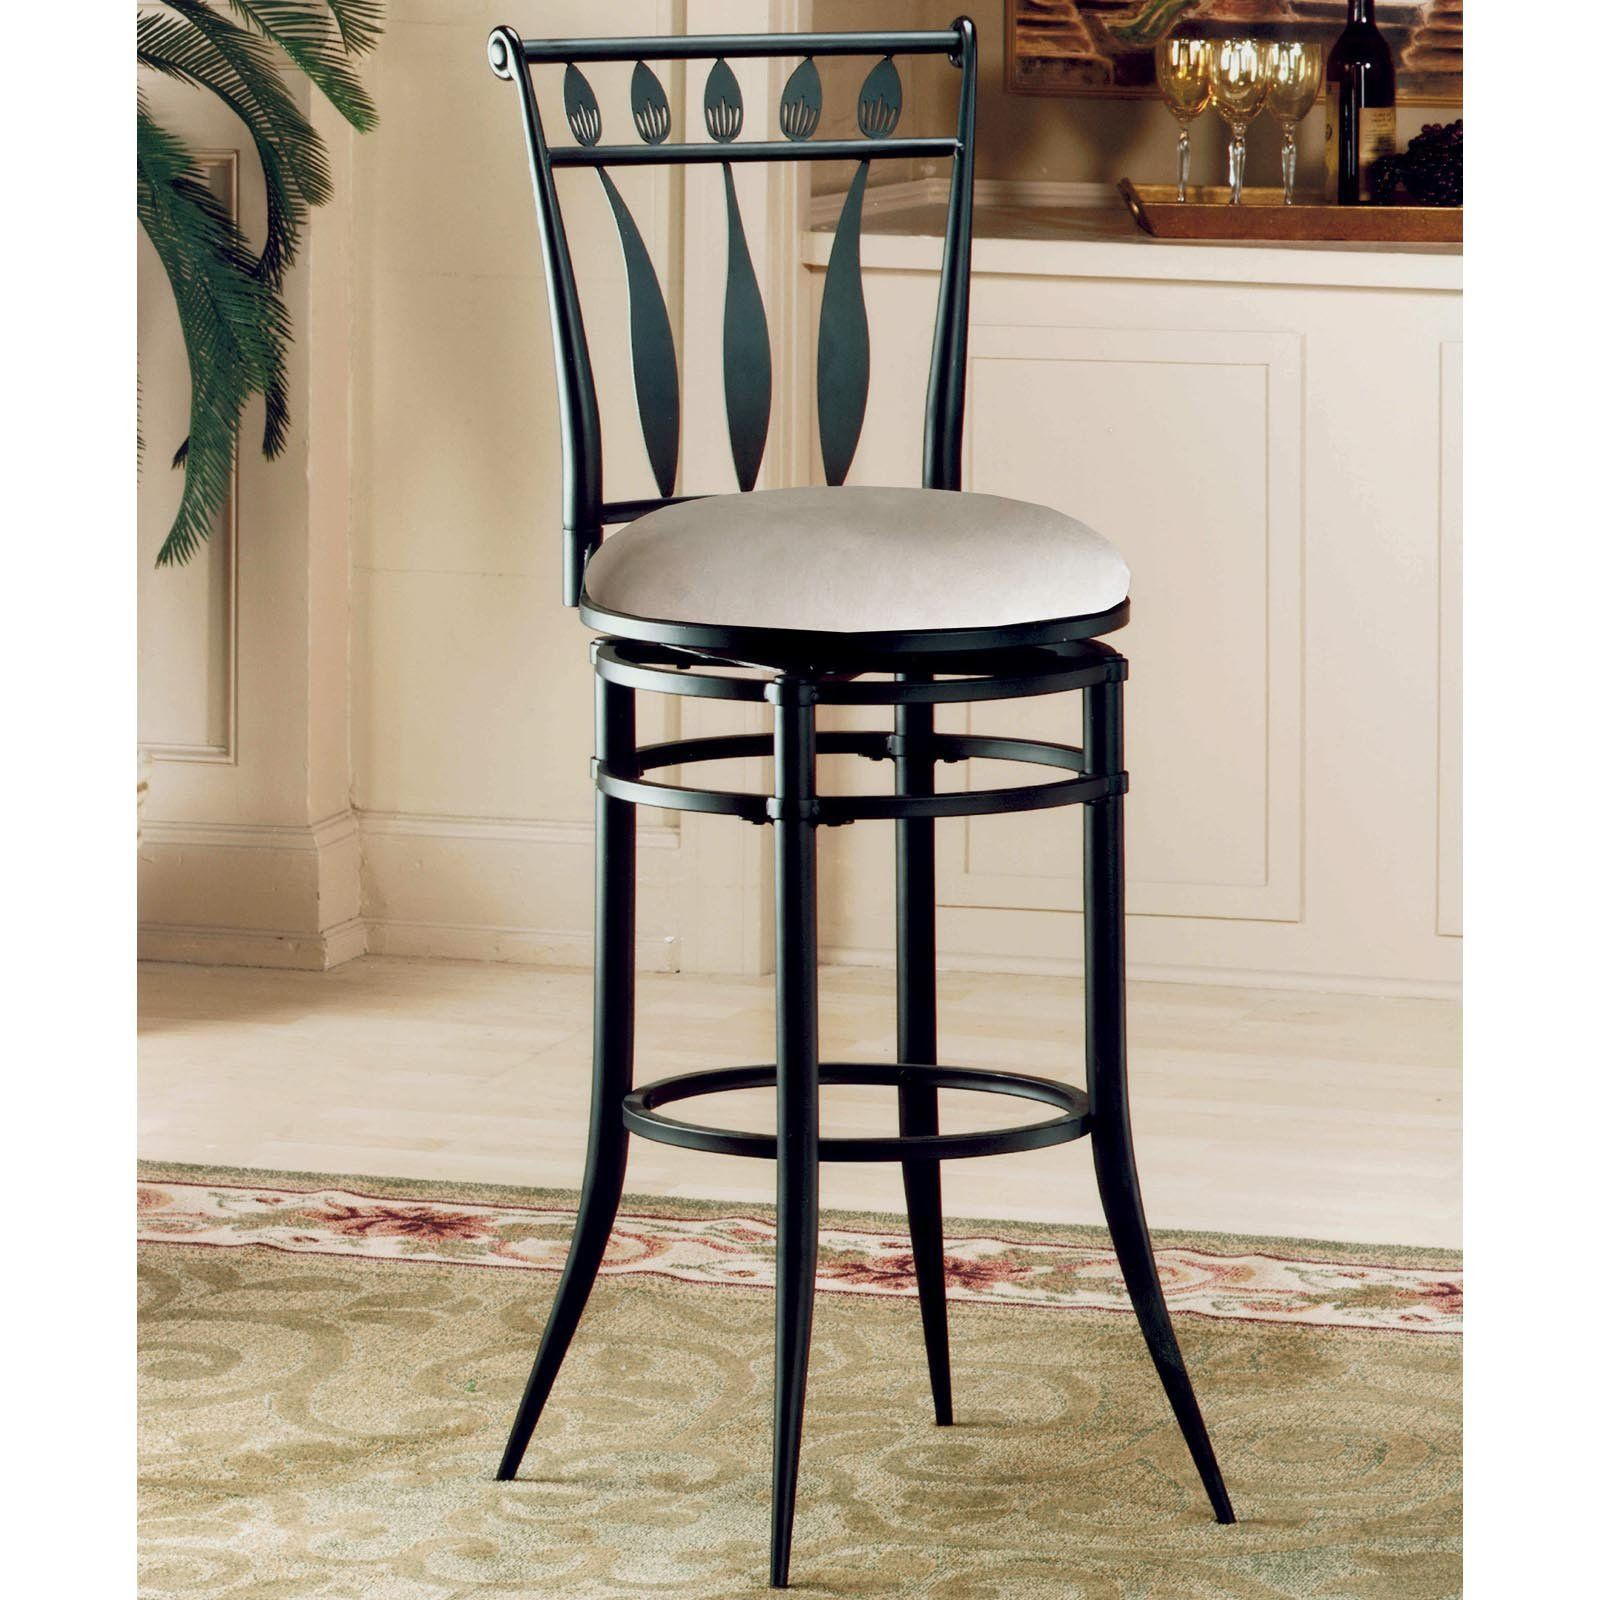 99 Walmart Bar Stools On Sale Modern Design Furniture Check More